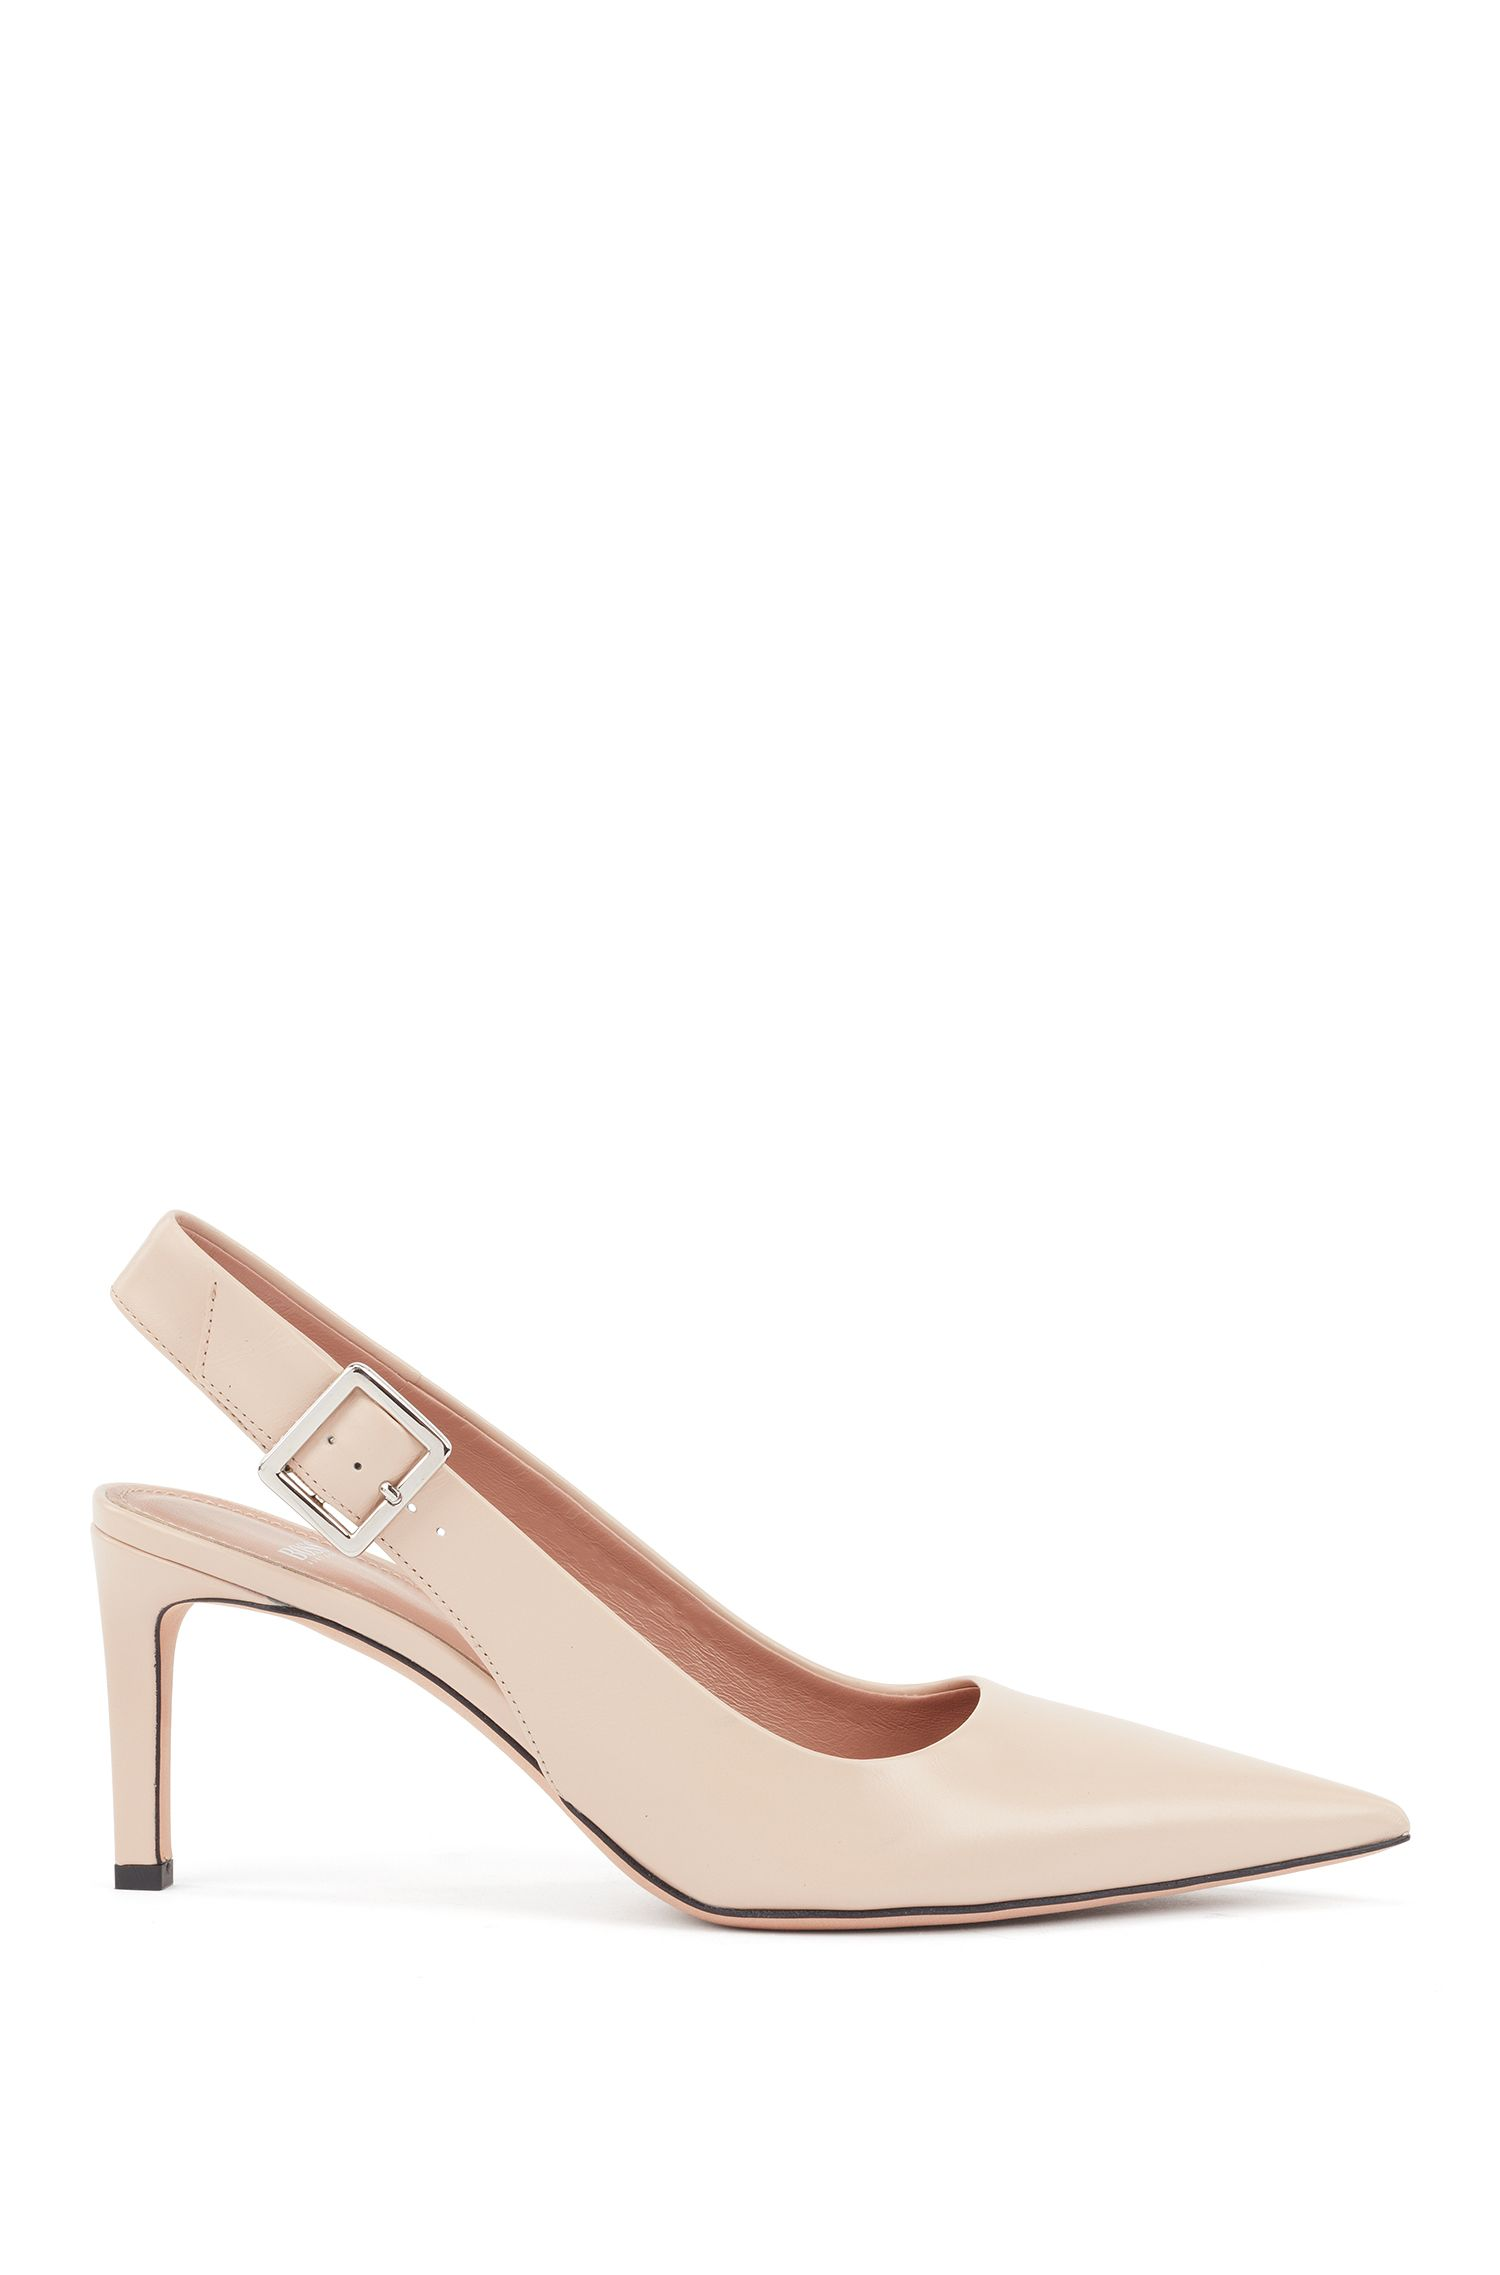 Slingback pumps in calf leather with buckle detail, Light Beige